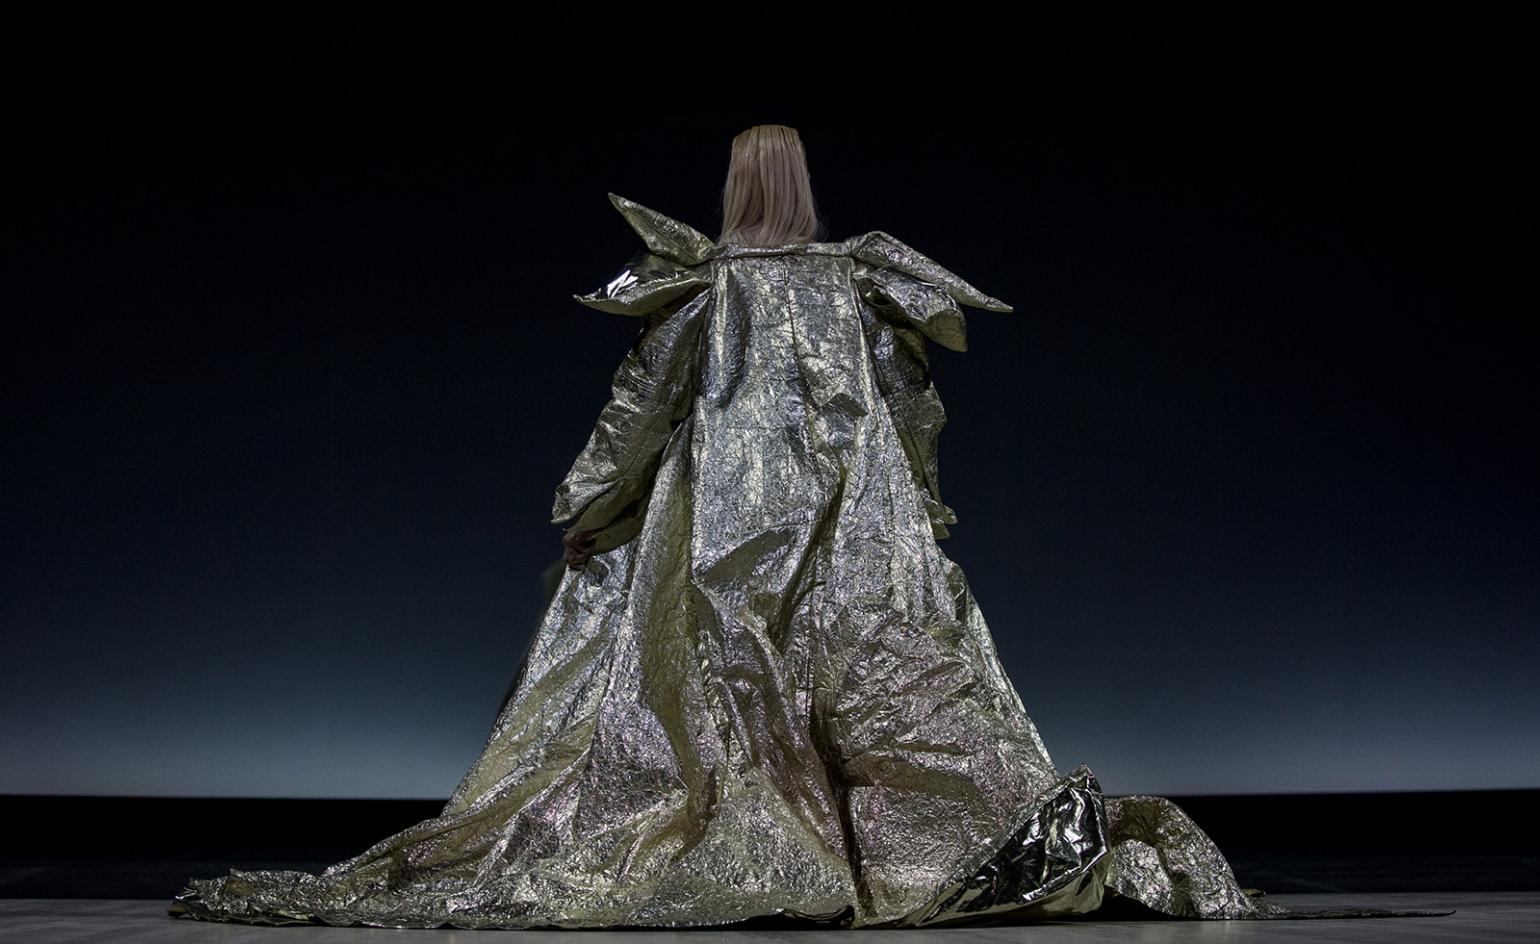 Celtic legend meets Japanese Noh theatre in dance directed by Hiroshi Sugimoto